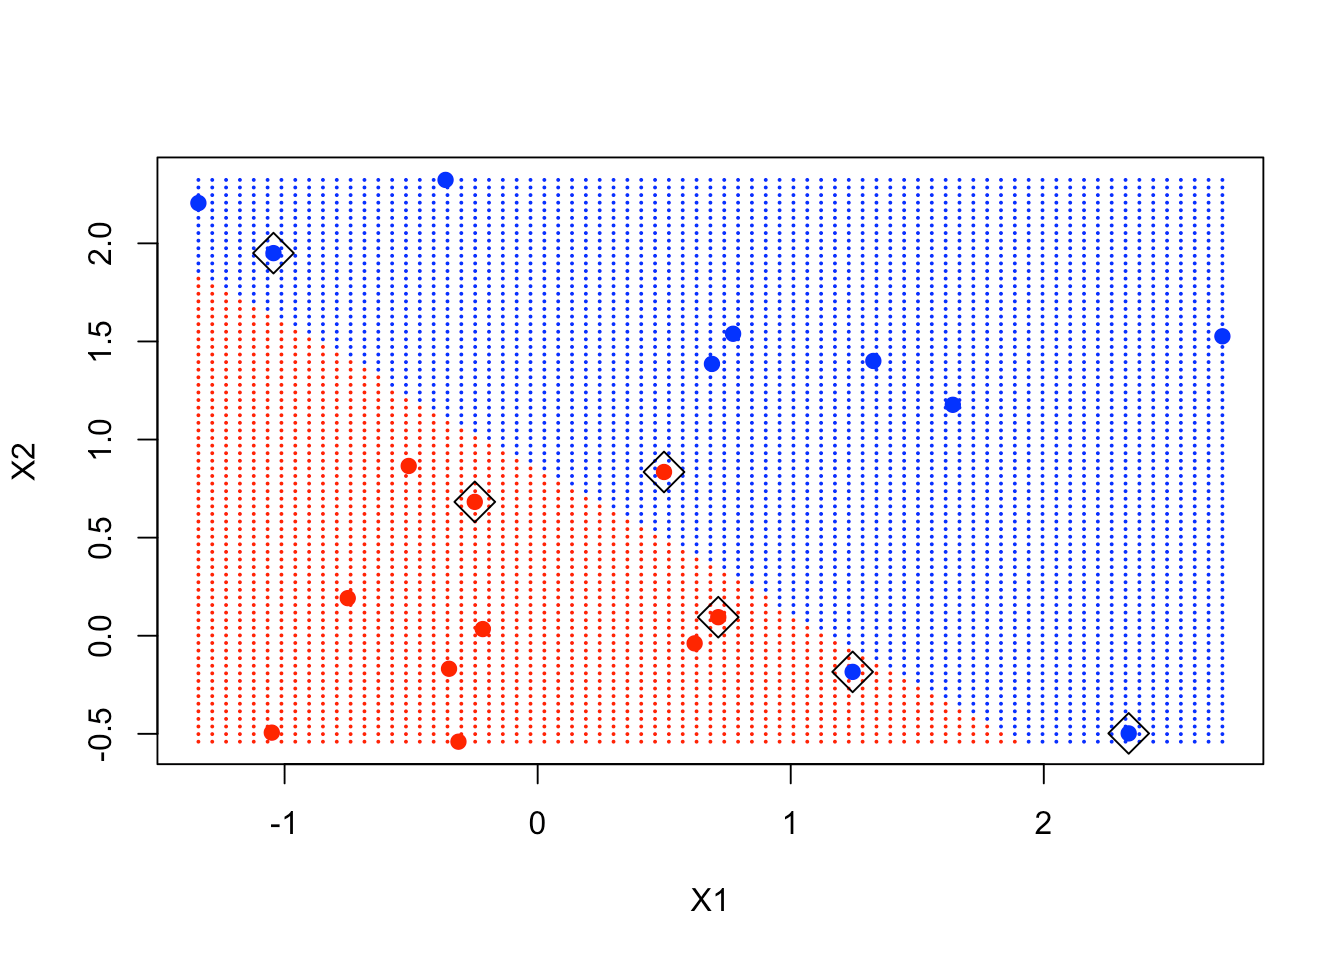 Support Vector Machines in R (article) - DataCamp